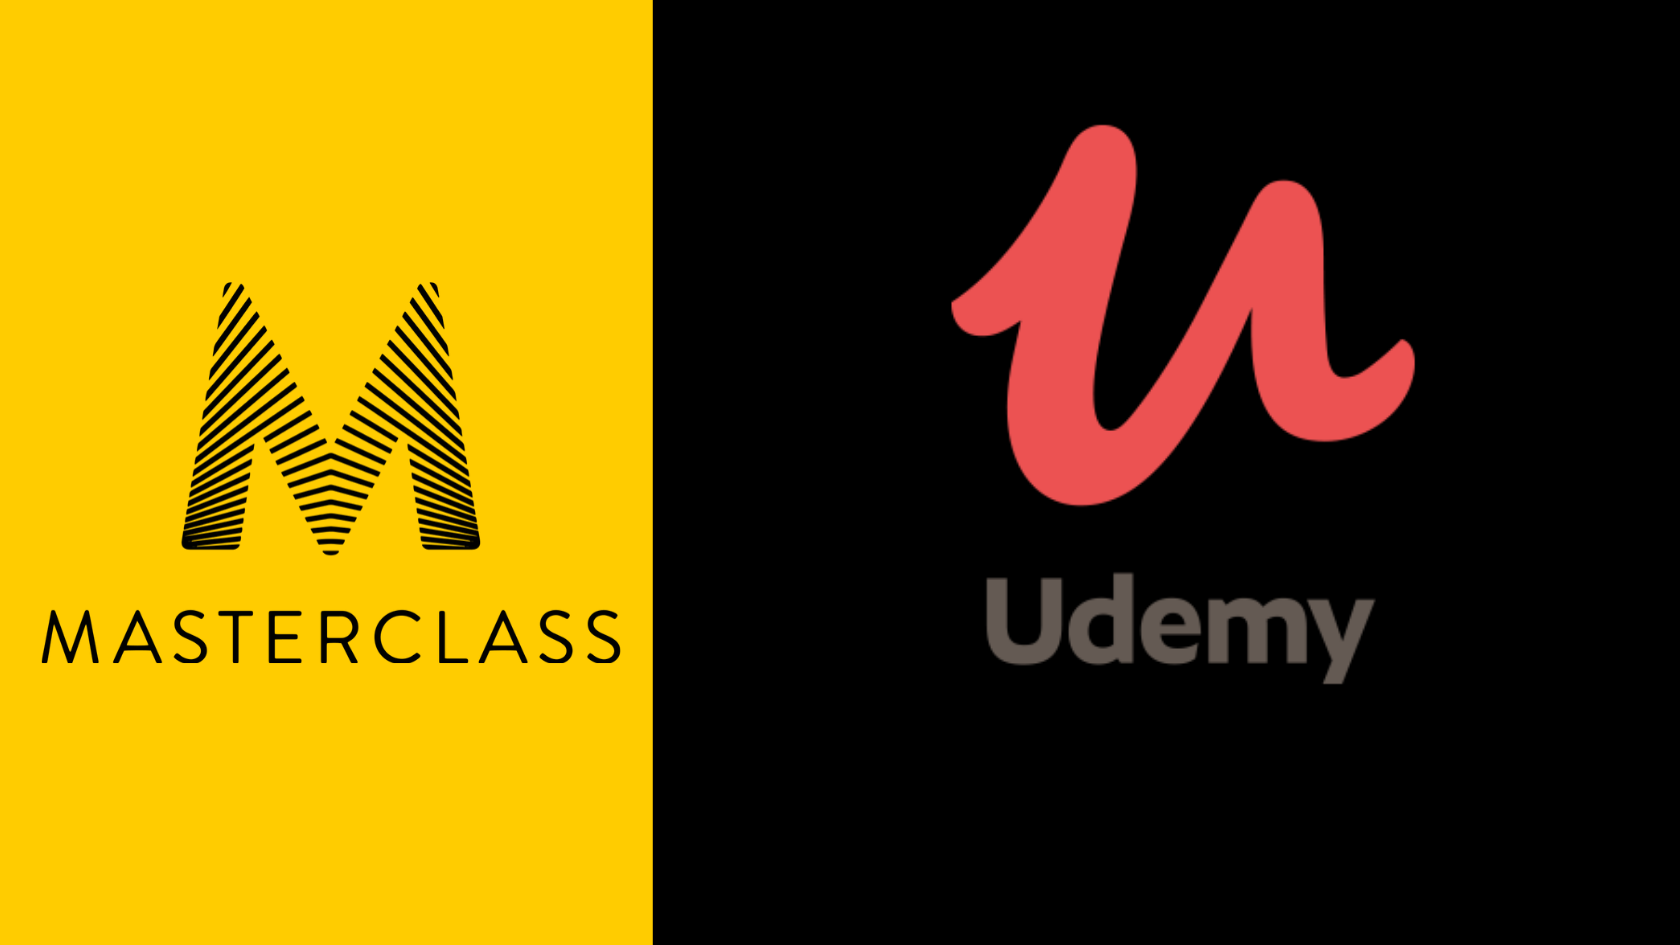 masterclass vs udemy